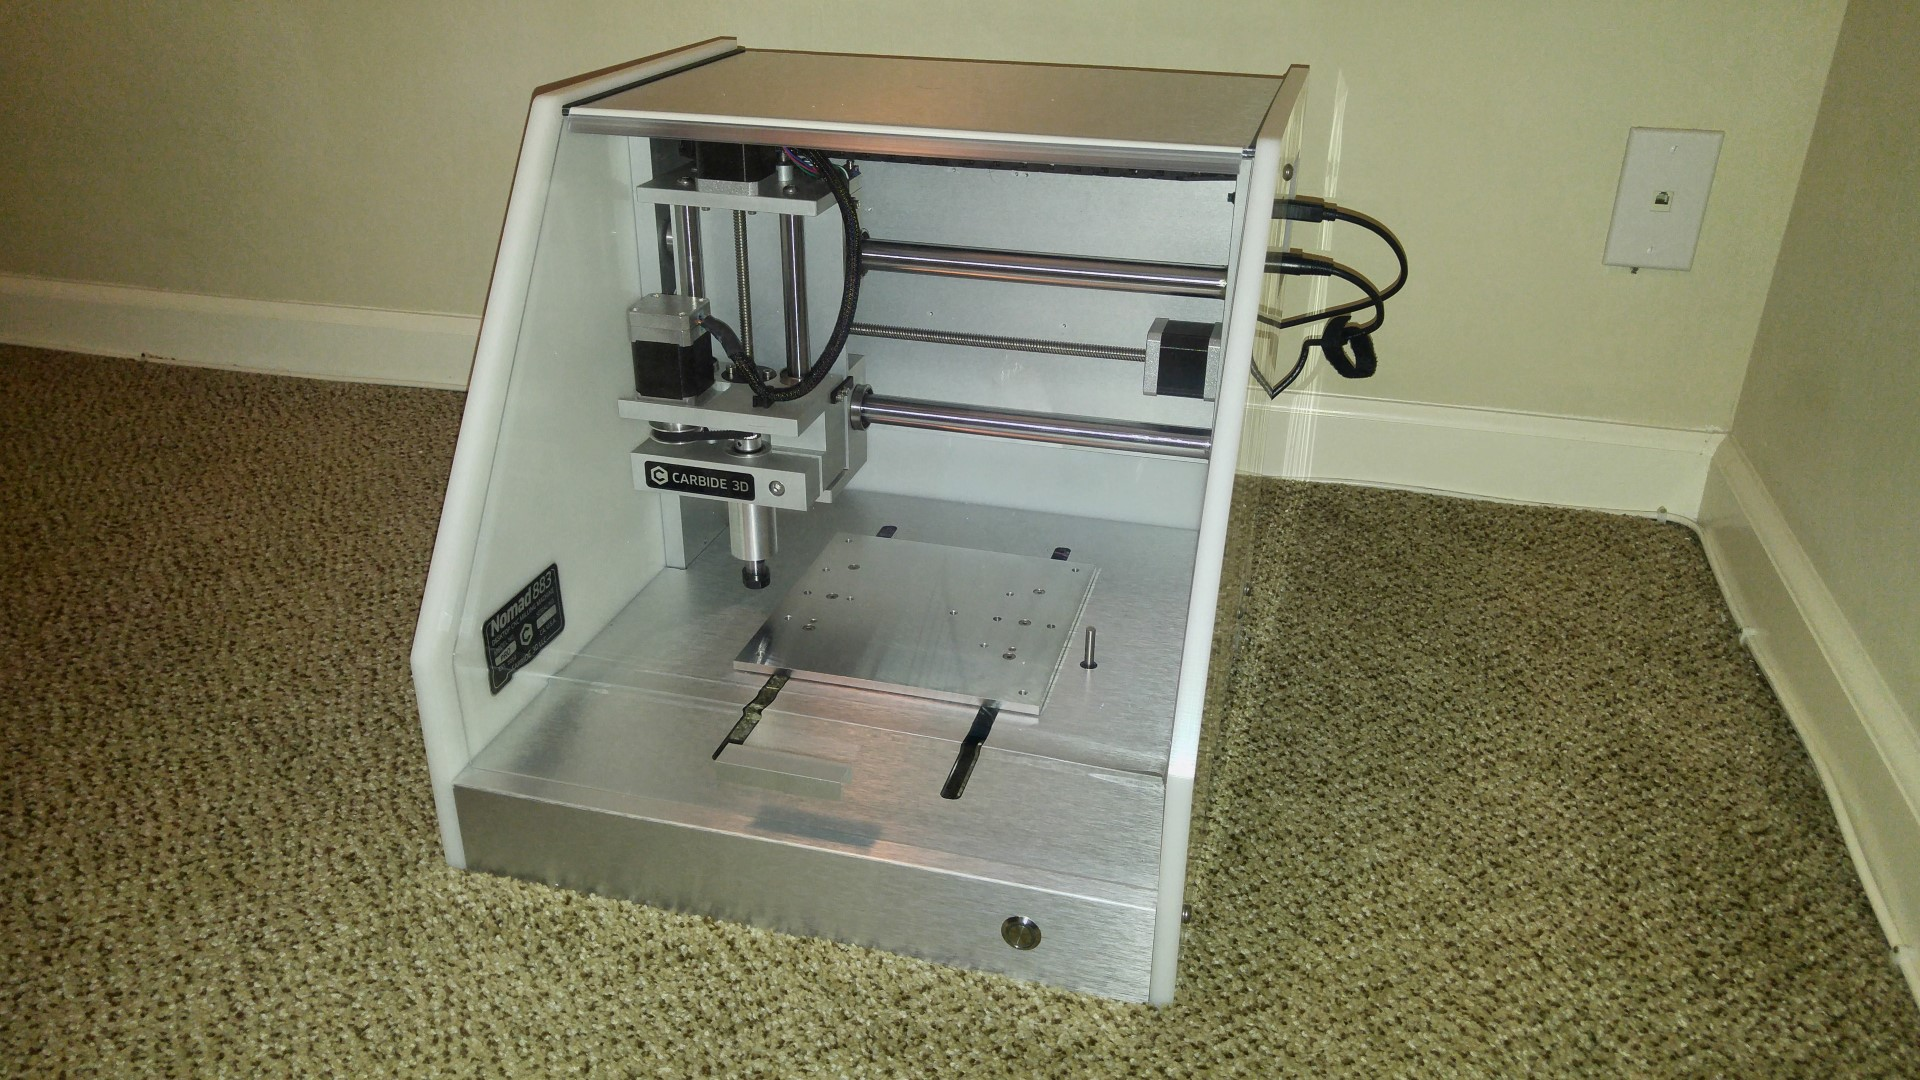 Posts Eleccelerator Printed Circuit Board Printer 20151111 181603 After Getting Comfortable With 3d Printing